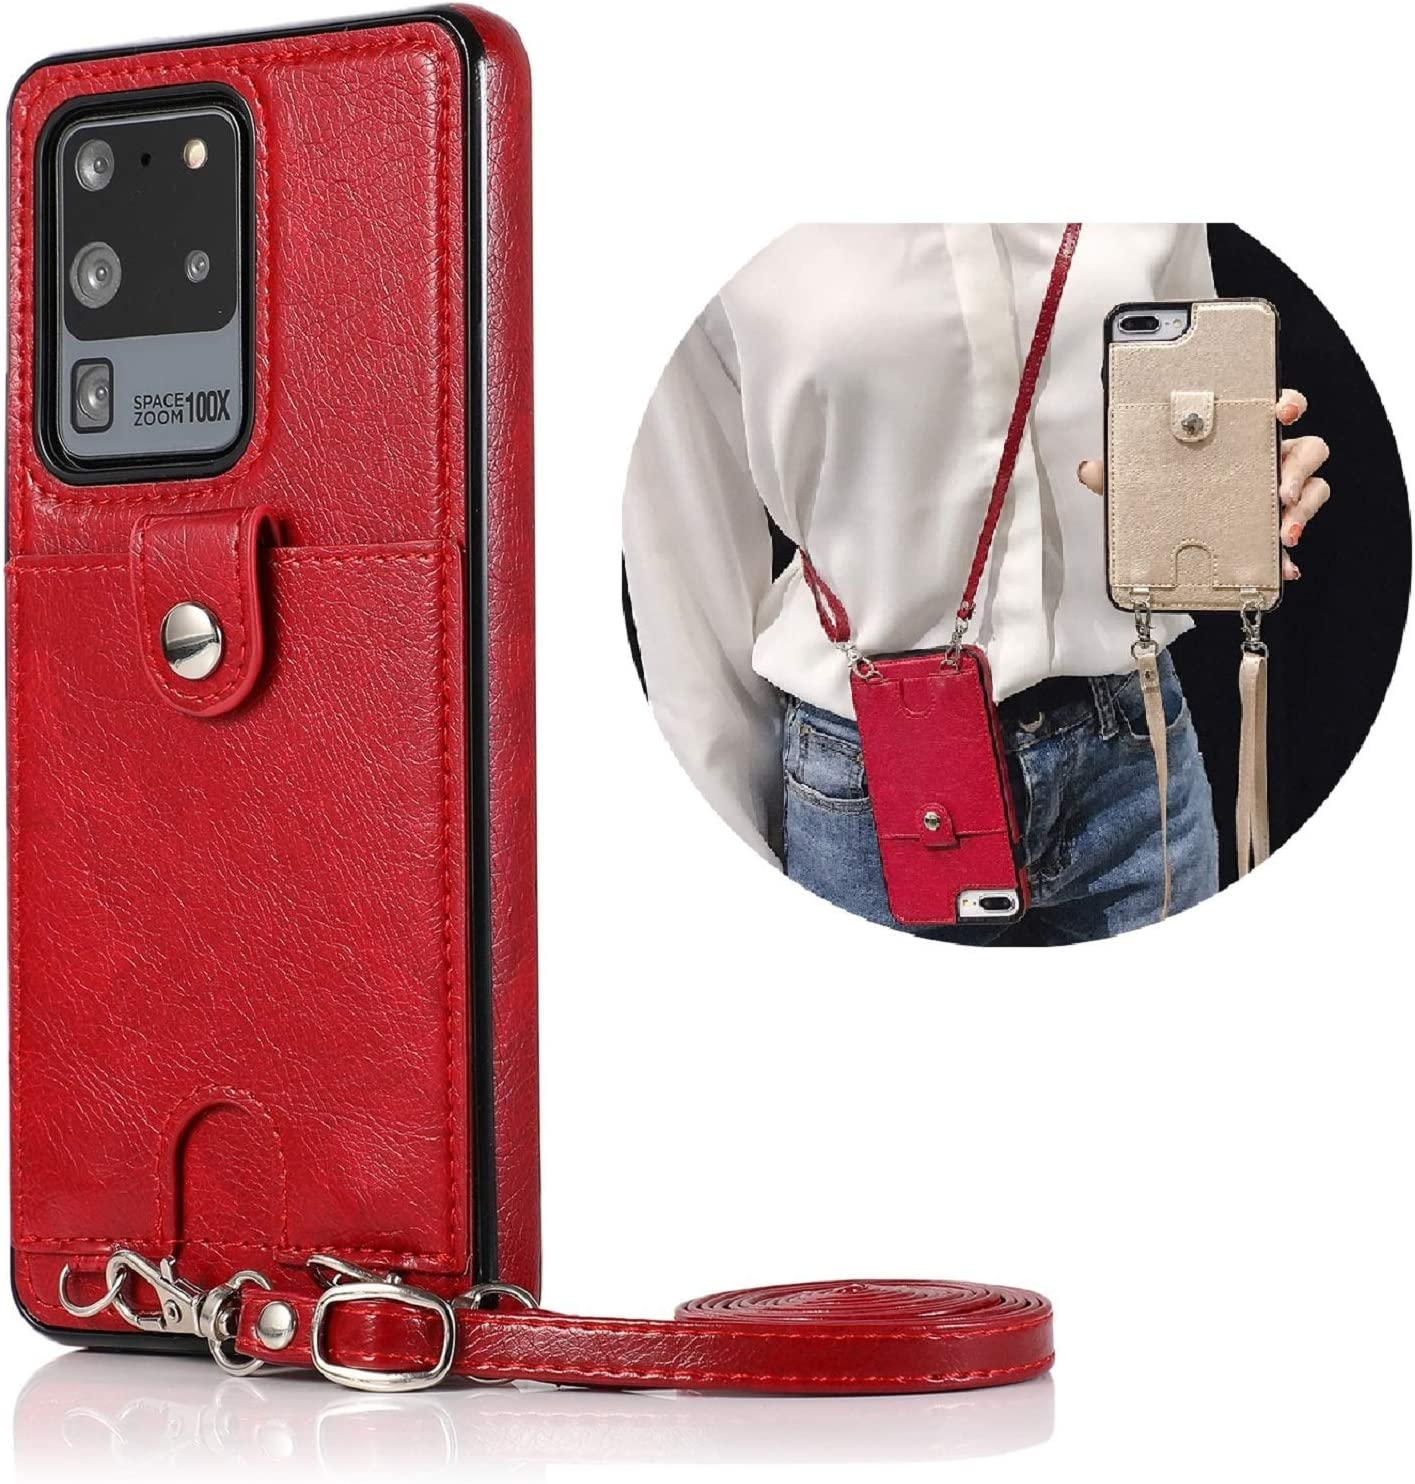 Jaorty PU Leather Wallet Case for Samsung Galaxy S20 Ultra Necklace Crossbody Lanyard Case Cover with Card Holder Adjustable Detachable Anti-Lost Neck Strap Case for Samsung Galaxy S20 Ultra,6.9